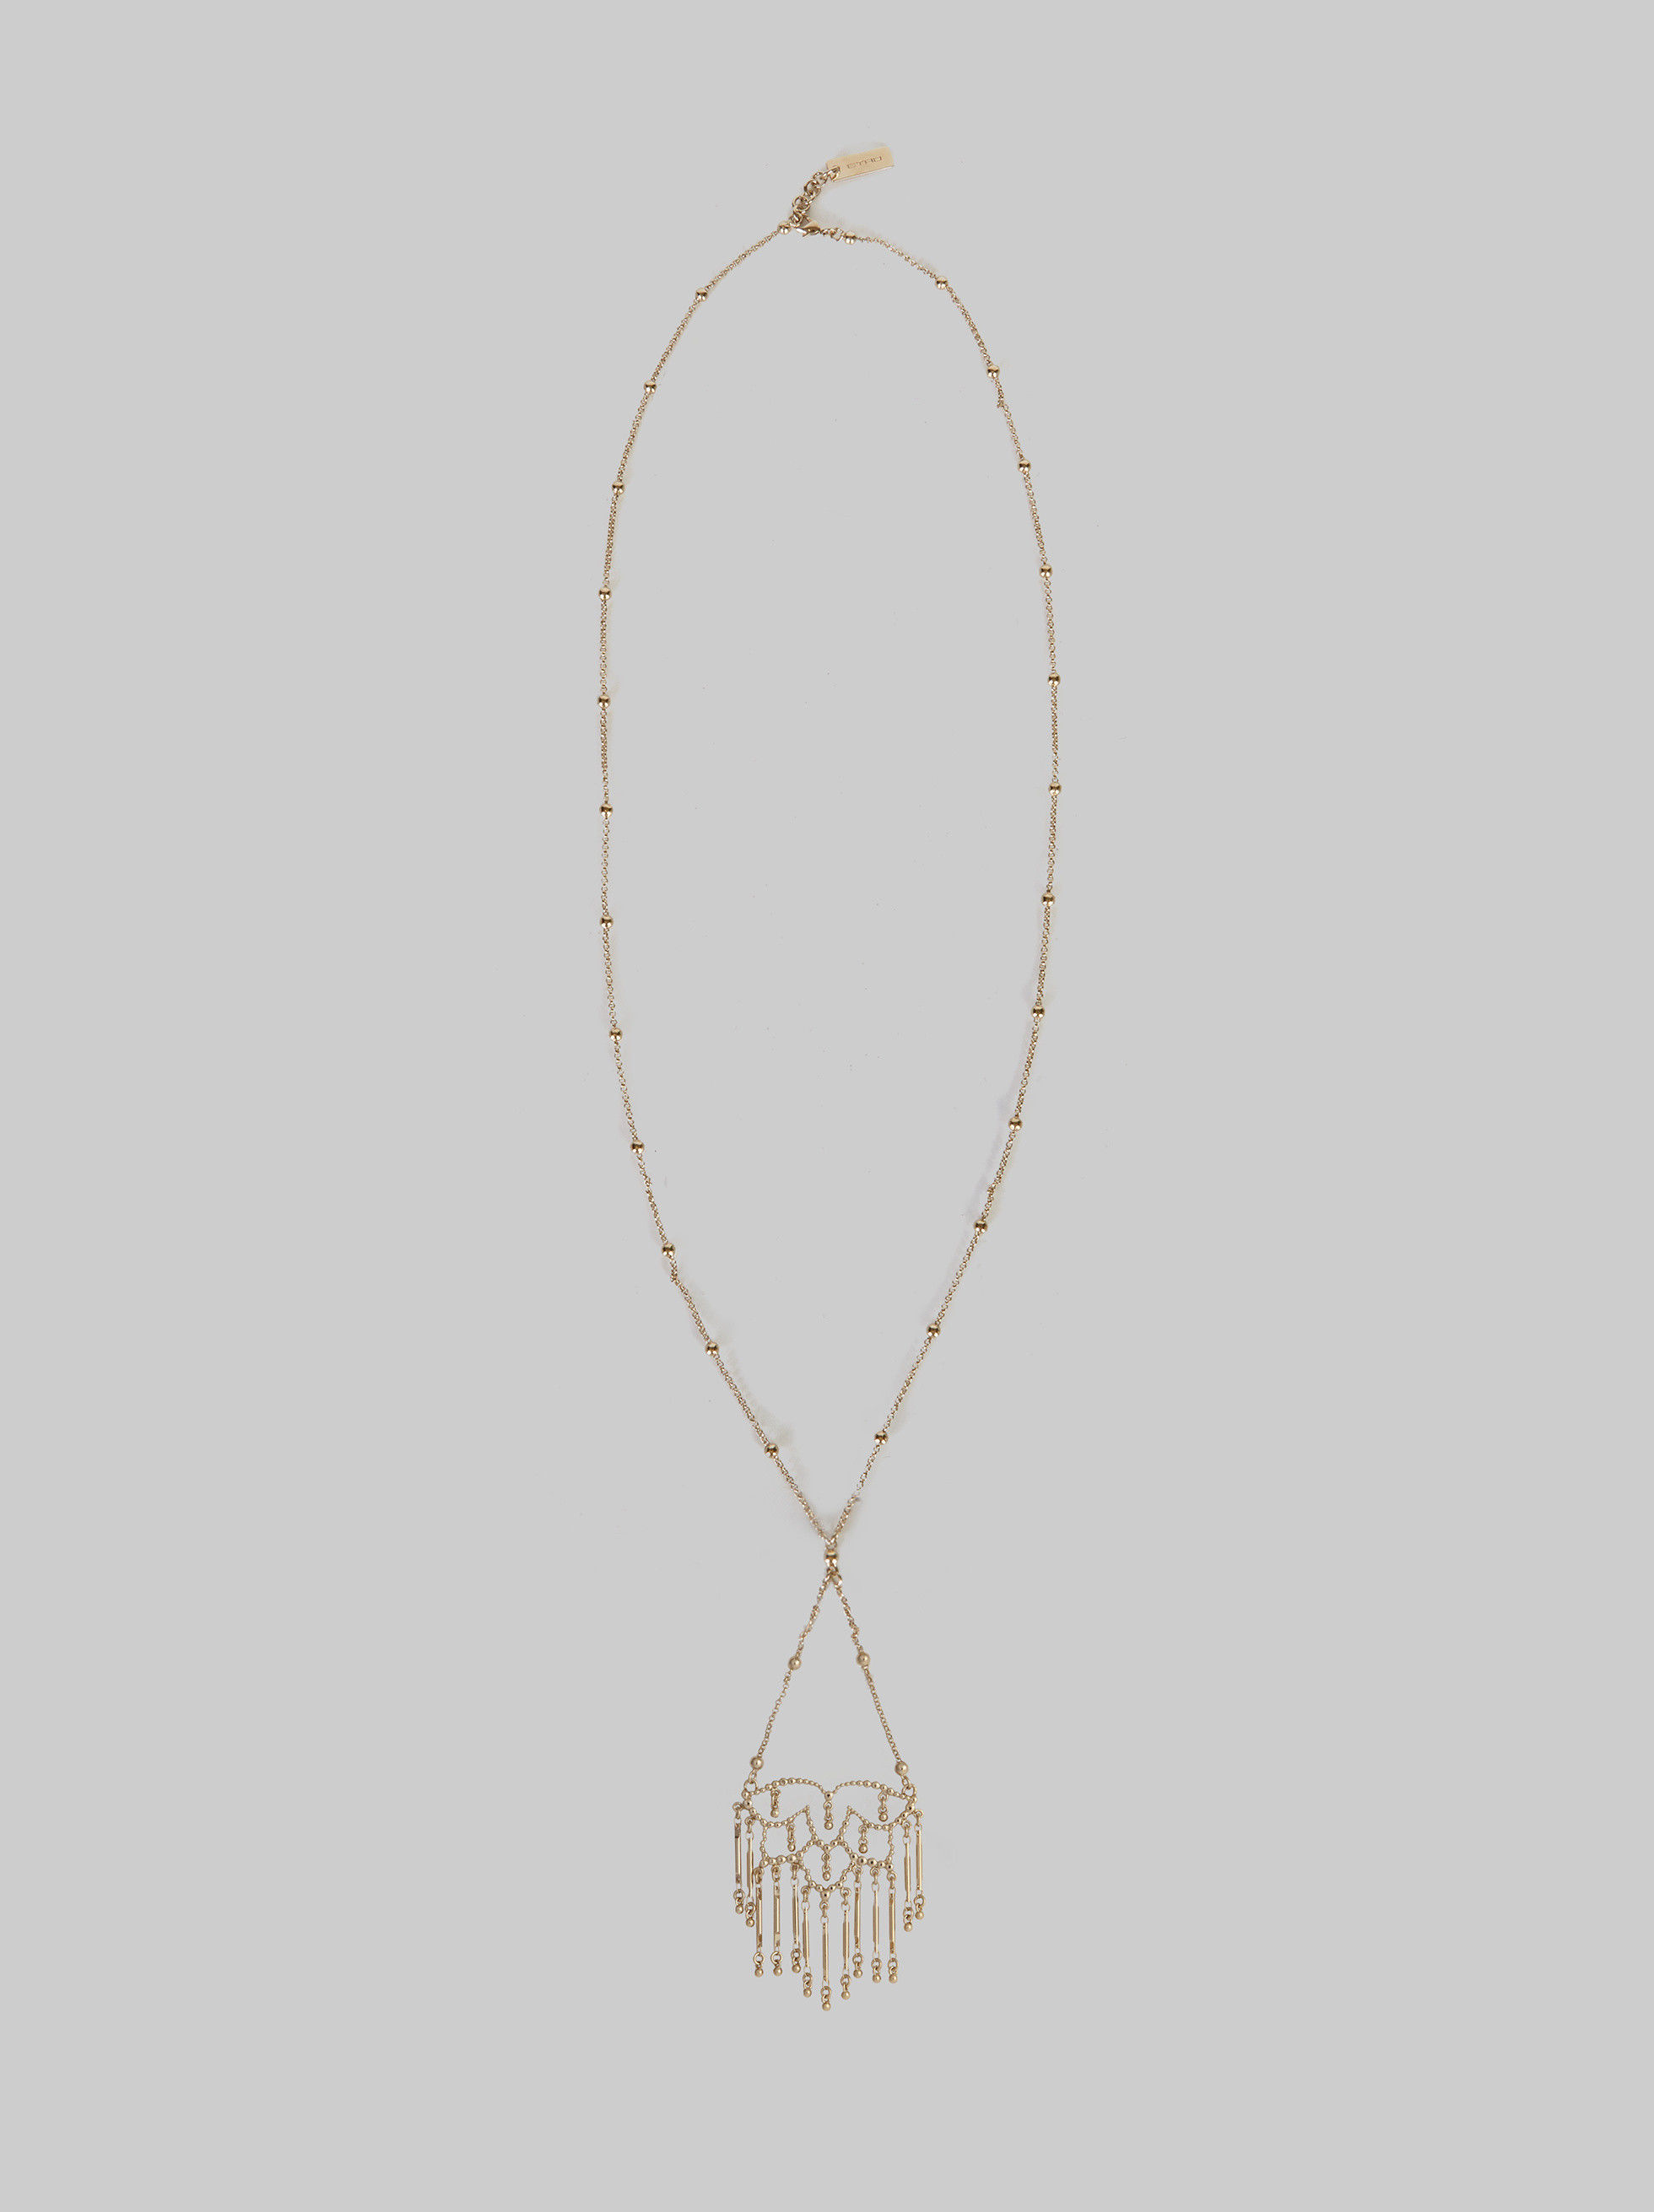 NECKLACE WITH CHANDELIER CHARM